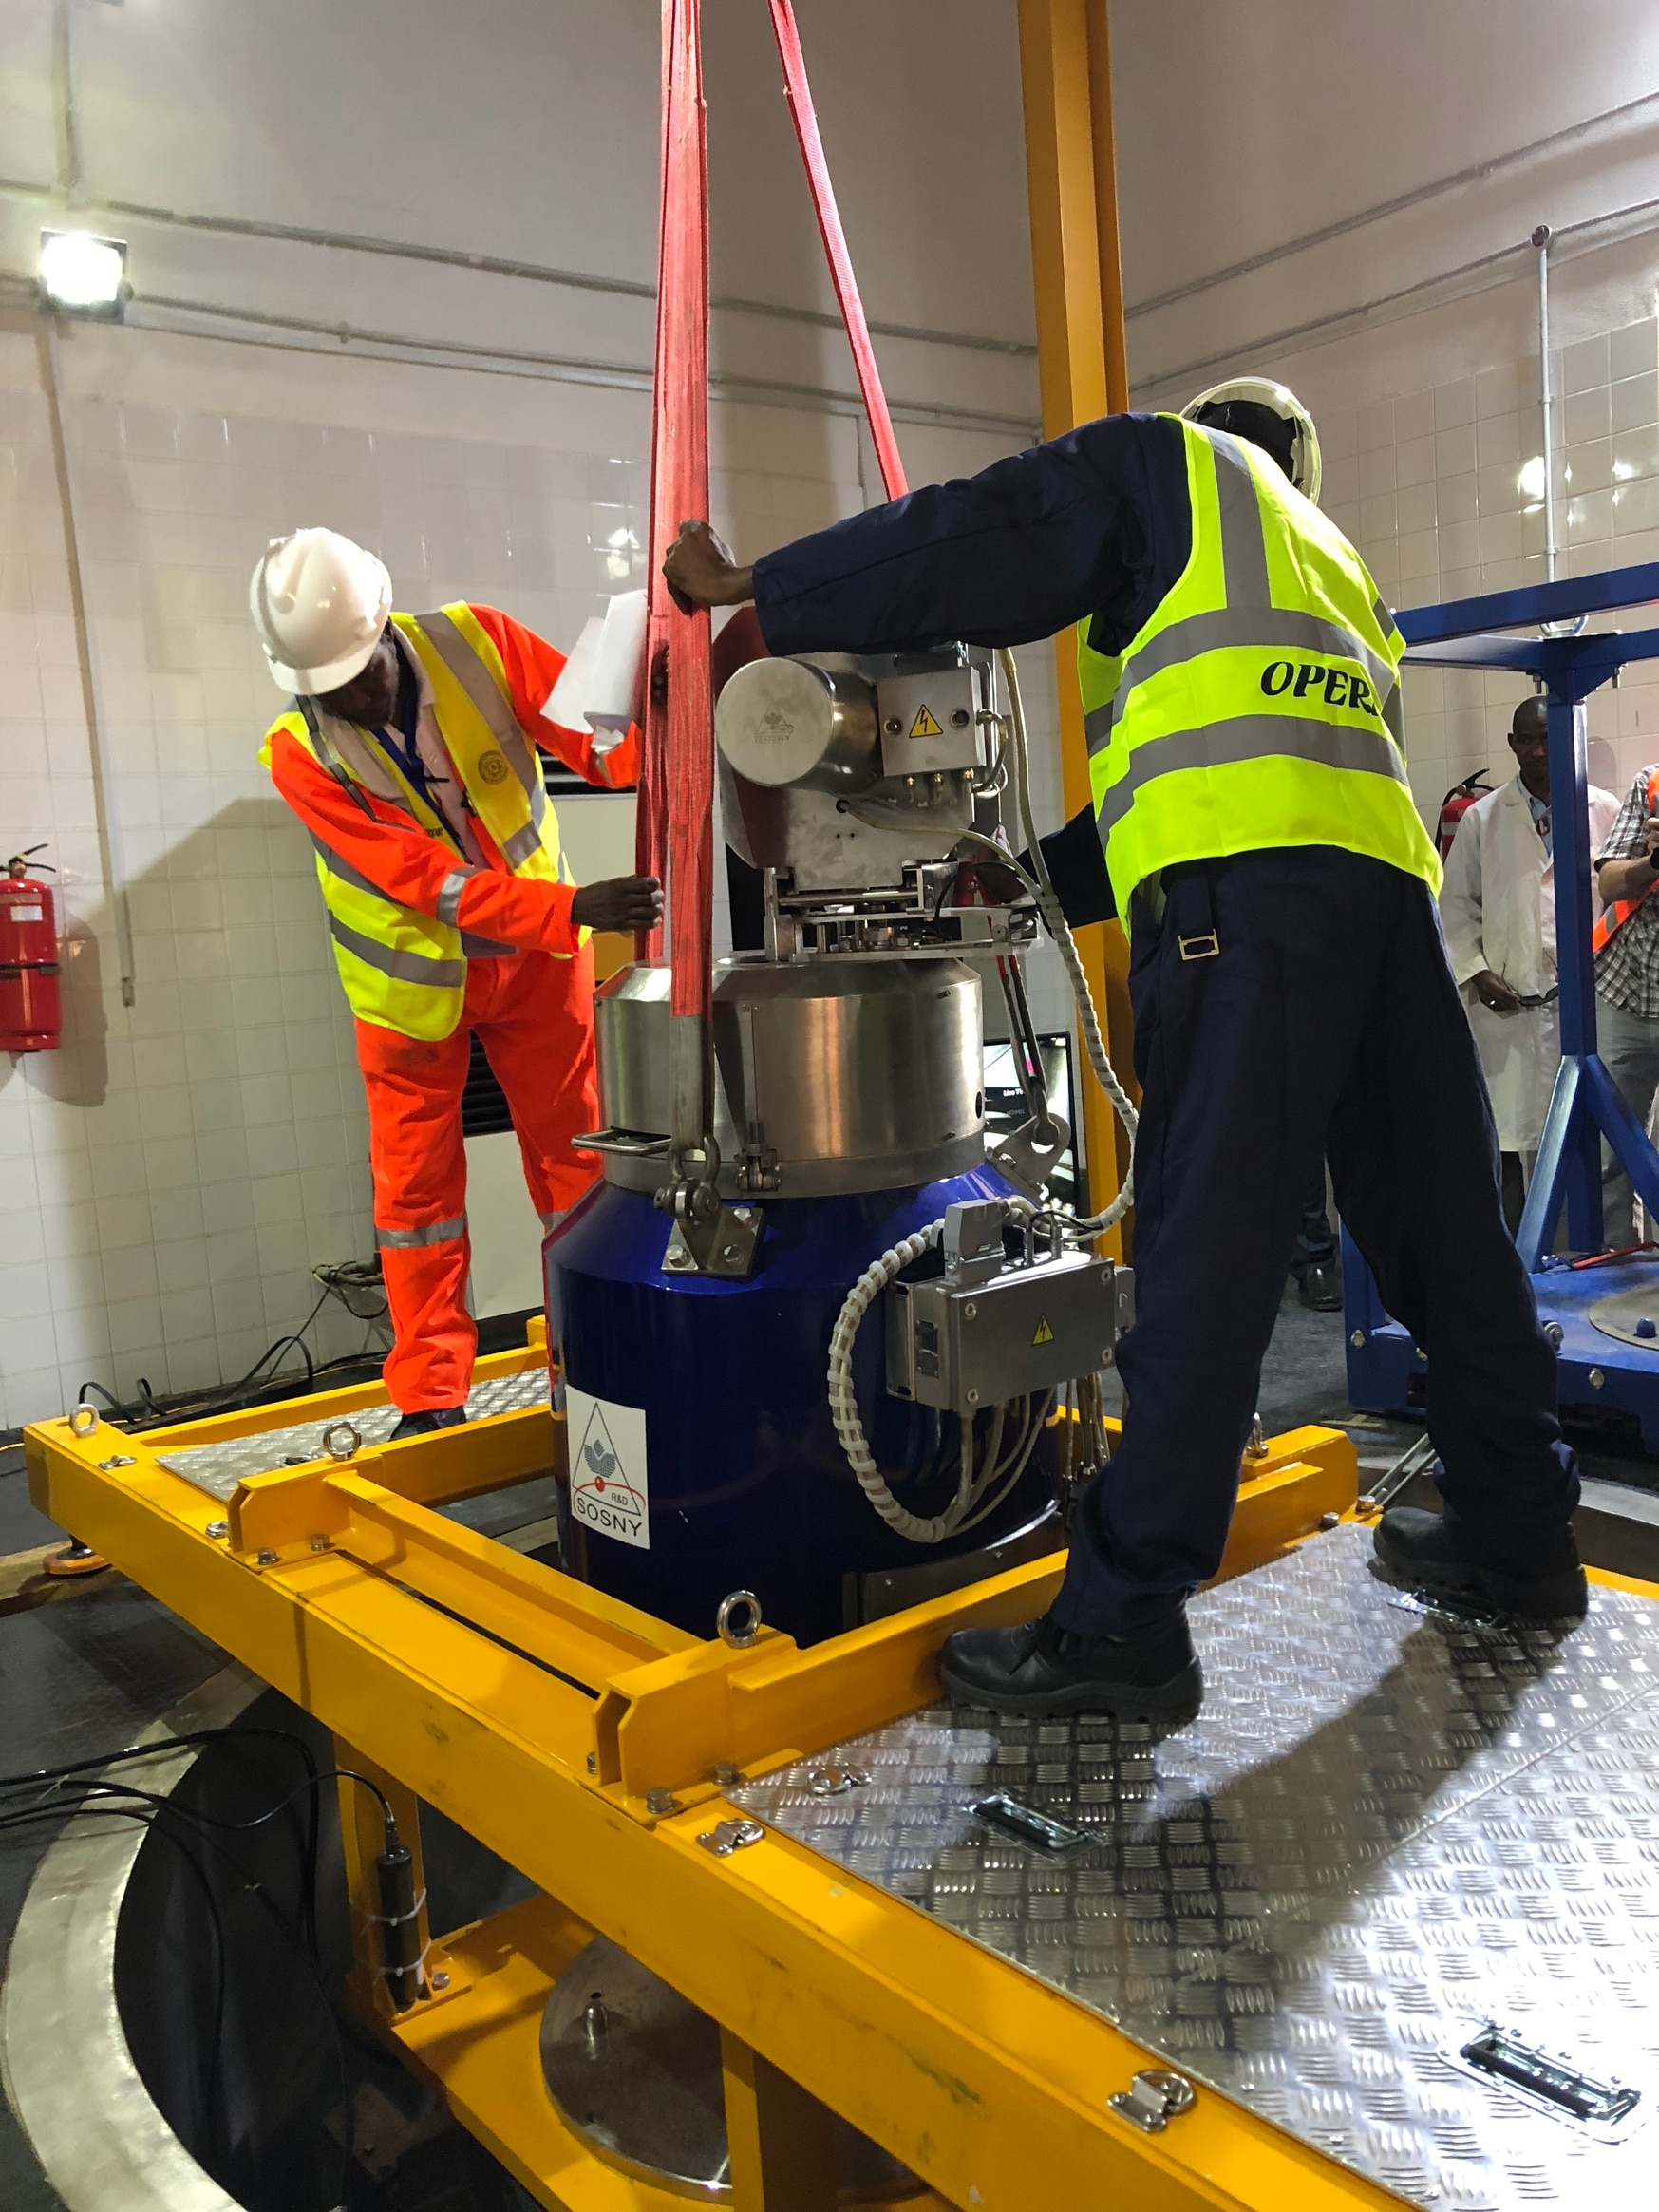 Technical experts from Nigeria's Centre for Energy Research and Training stand over the miniature neutron source reactor and prepare to load the HEU reactor core into an interim transfer cask. (U.S. National Nuclear Security Administration)